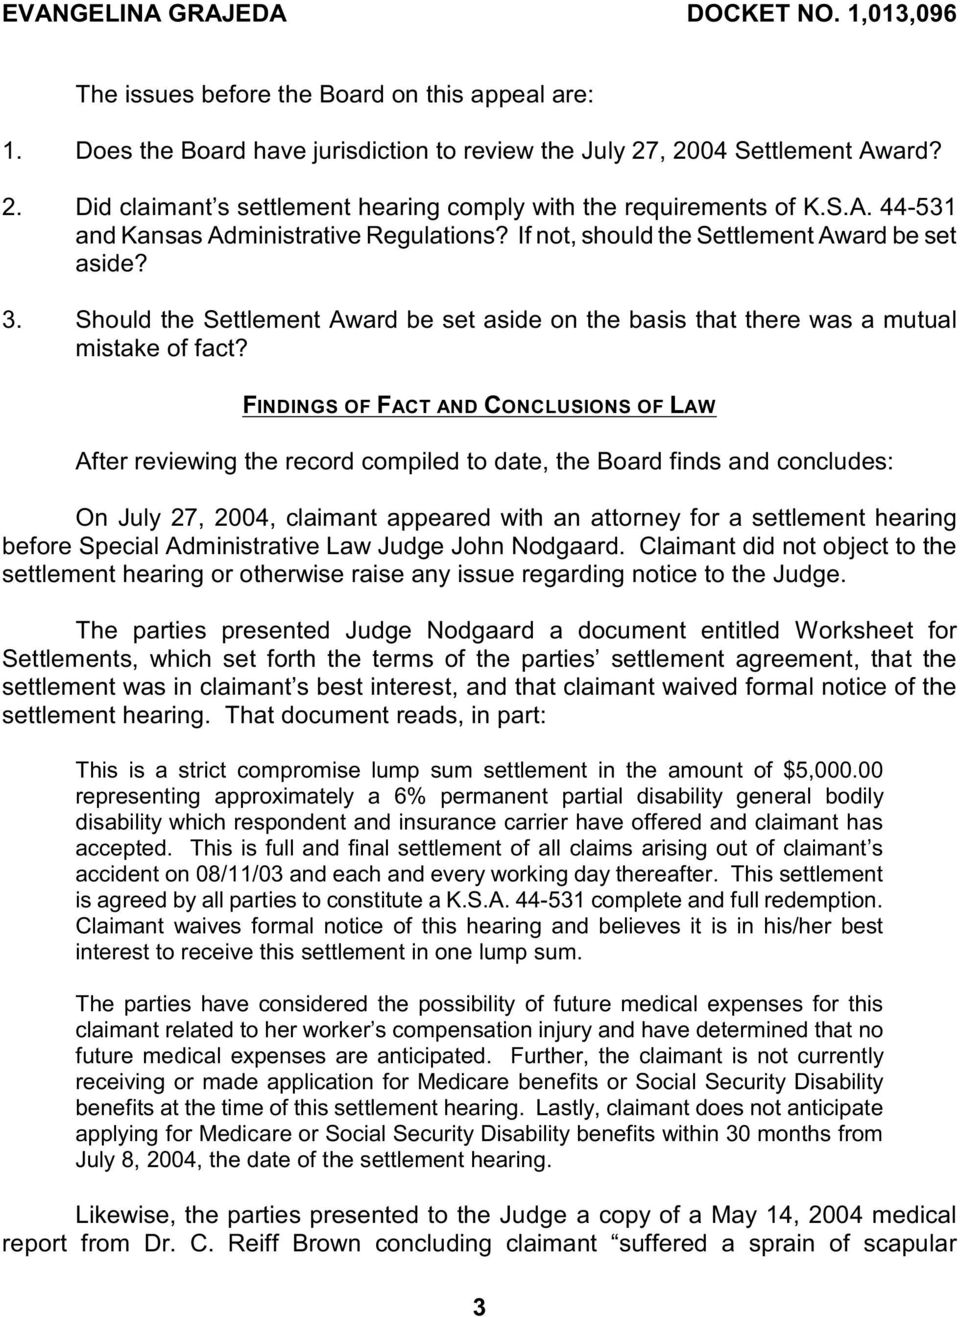 FINDINGS OF FACT AND CONCLUSIONS OF LAW After reviewing the record compiled to date, the Board finds and concludes: On July 27, 2004, claimant appeared with an attorney for a settlement hearing